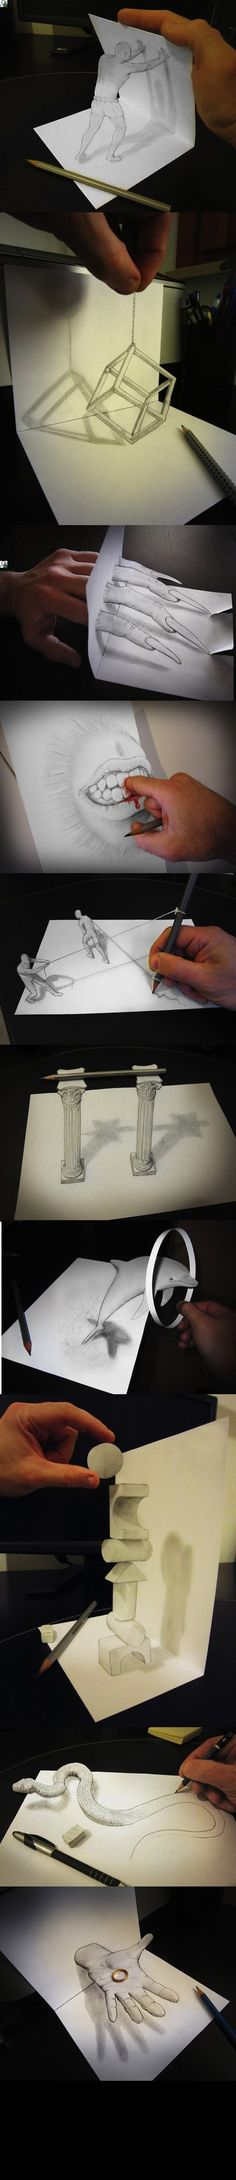 #dessin #illusion #3D